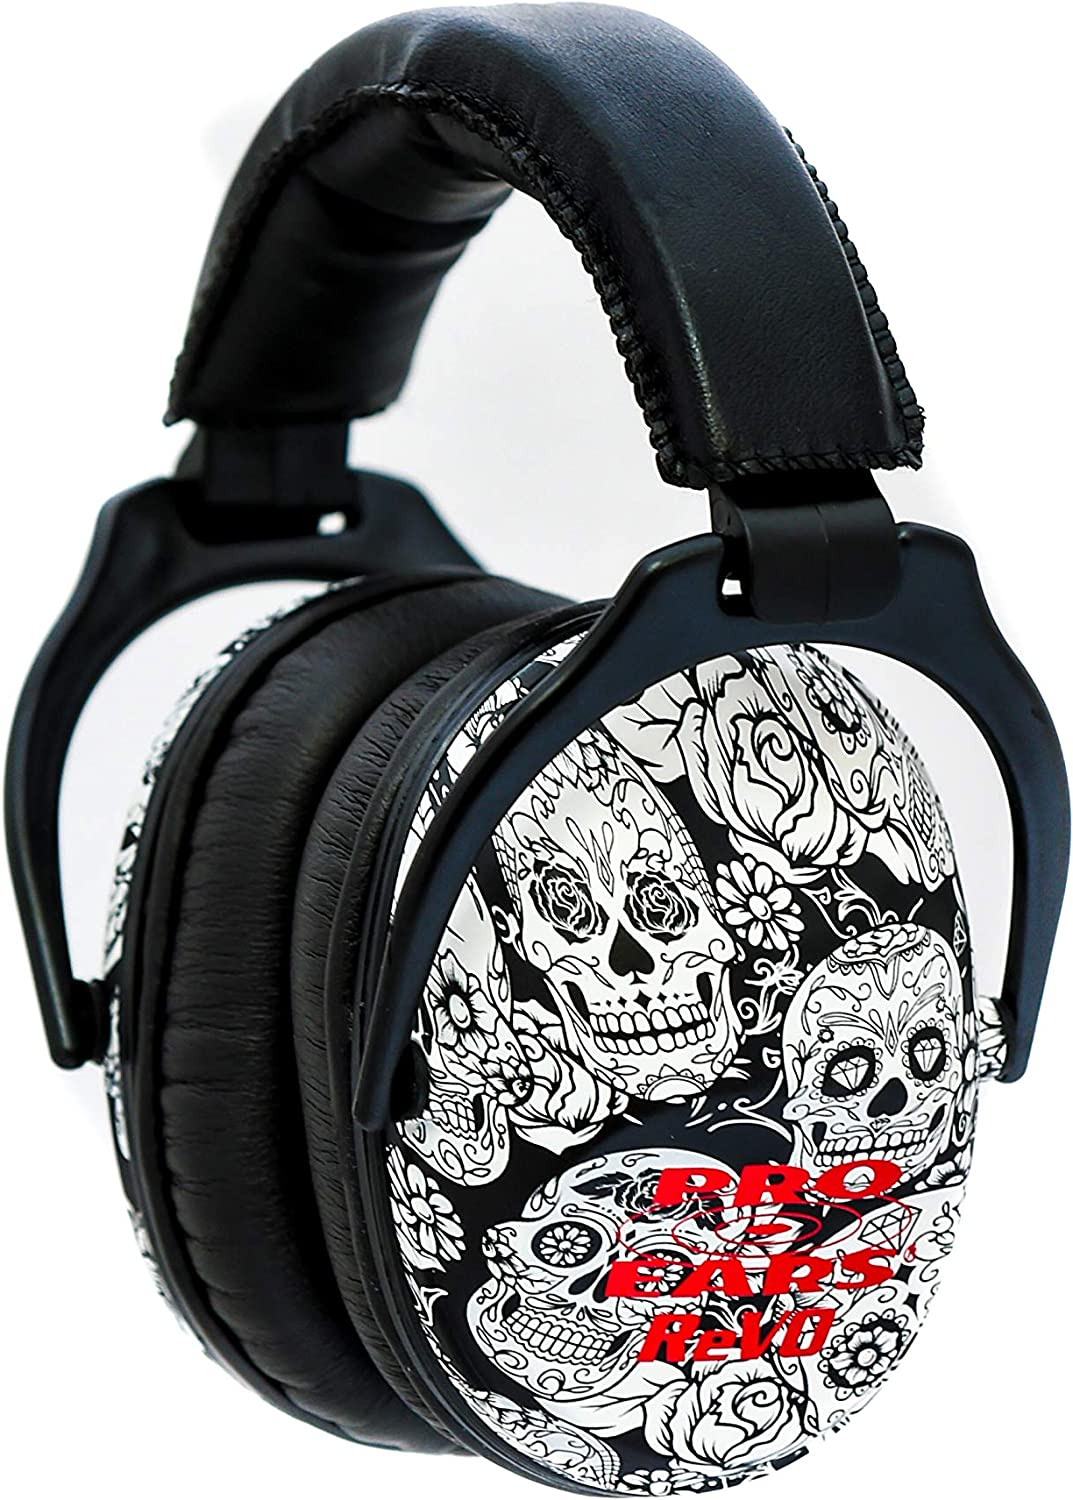 ReVO Kids Full Spectrum Safety Cheap Price reduction mail order sales Ear Electronic Muffs